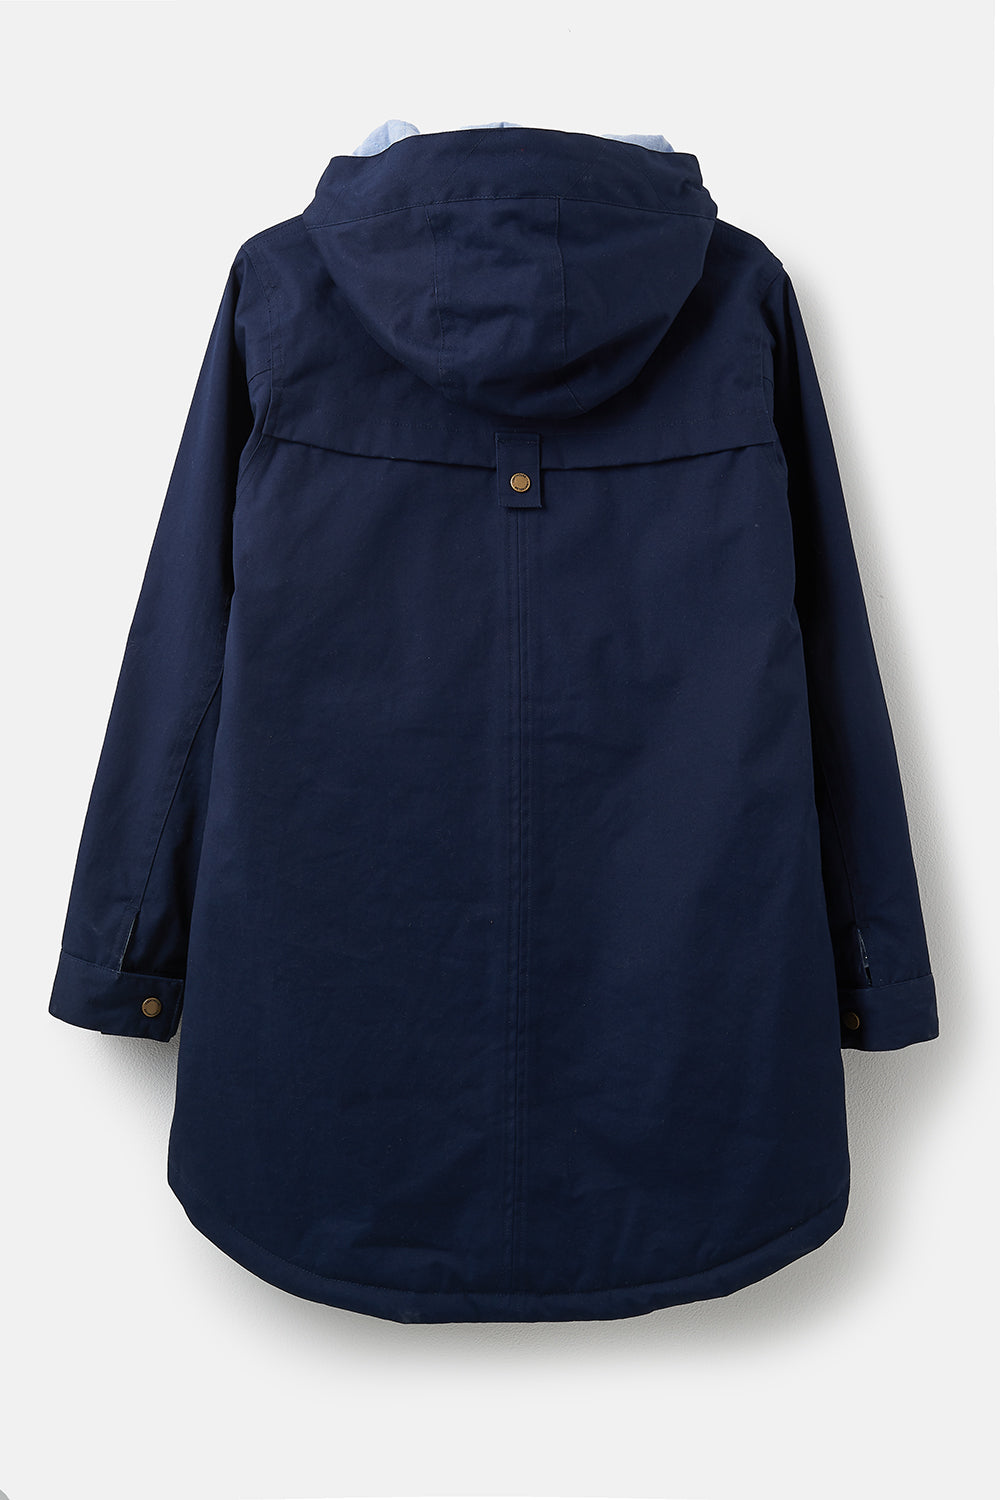 Lighthouse Florence Womens Warm Waterproof Coat - Navy